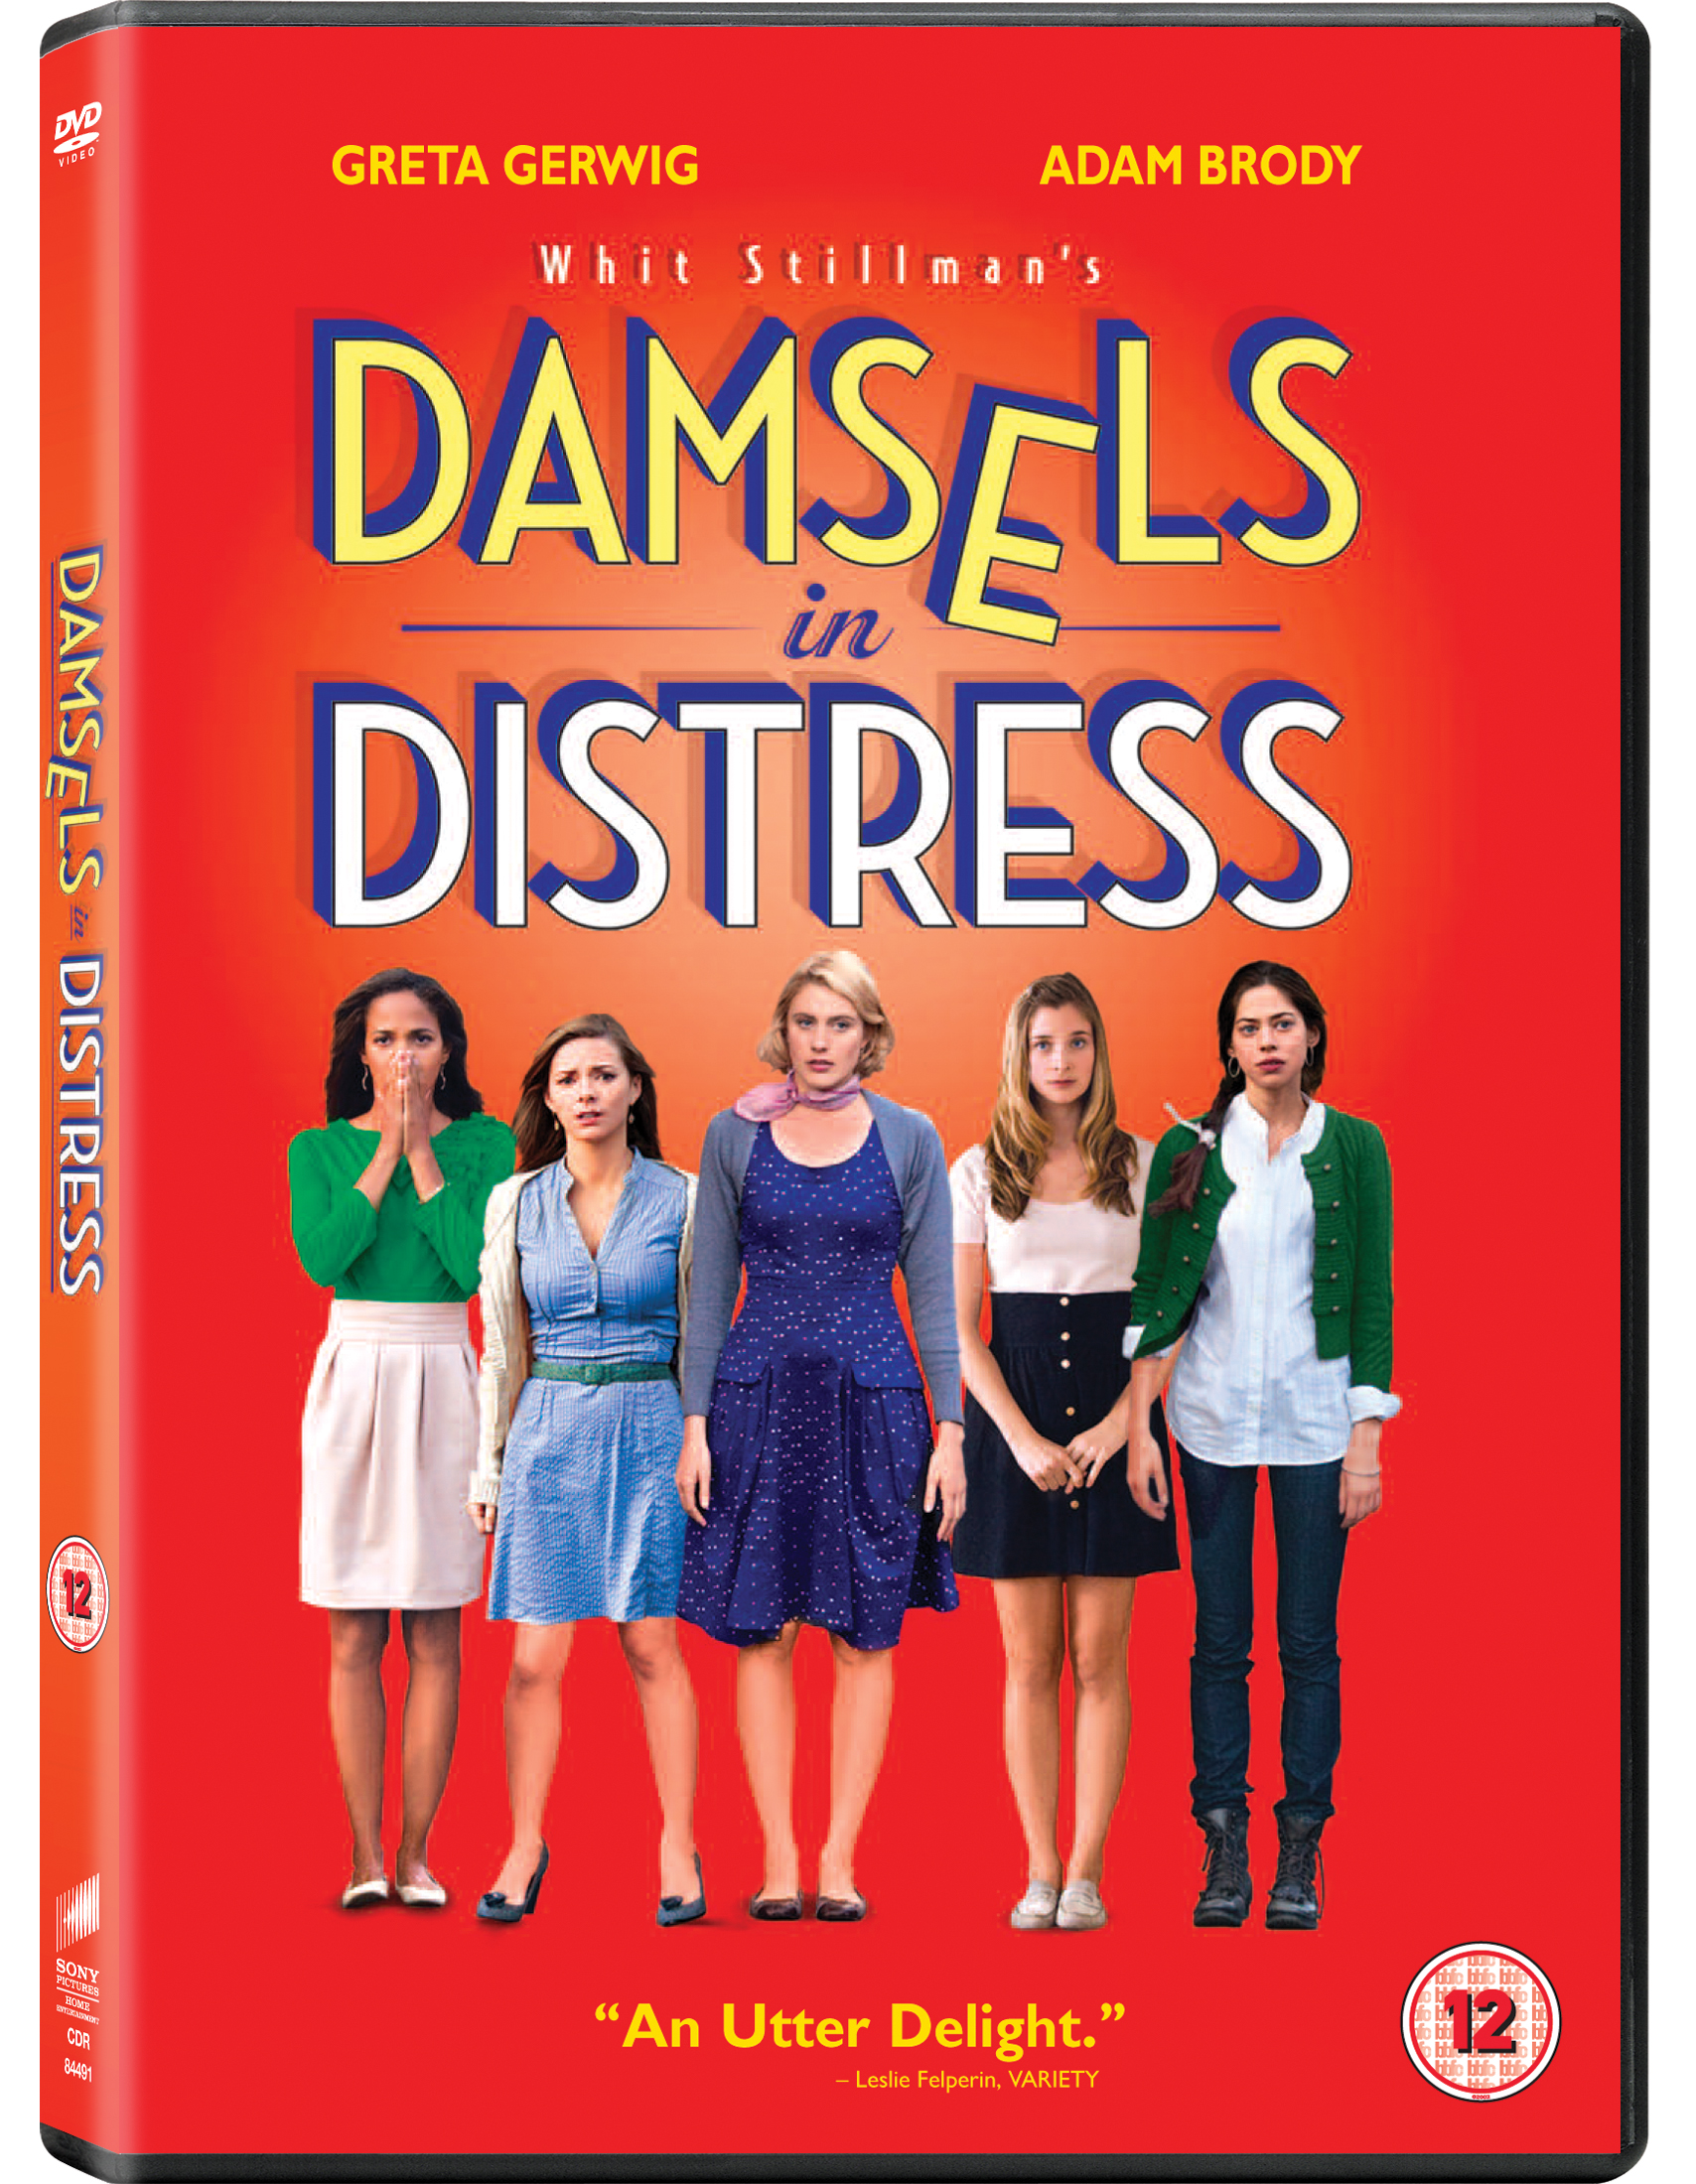 Damsels in distress meaning